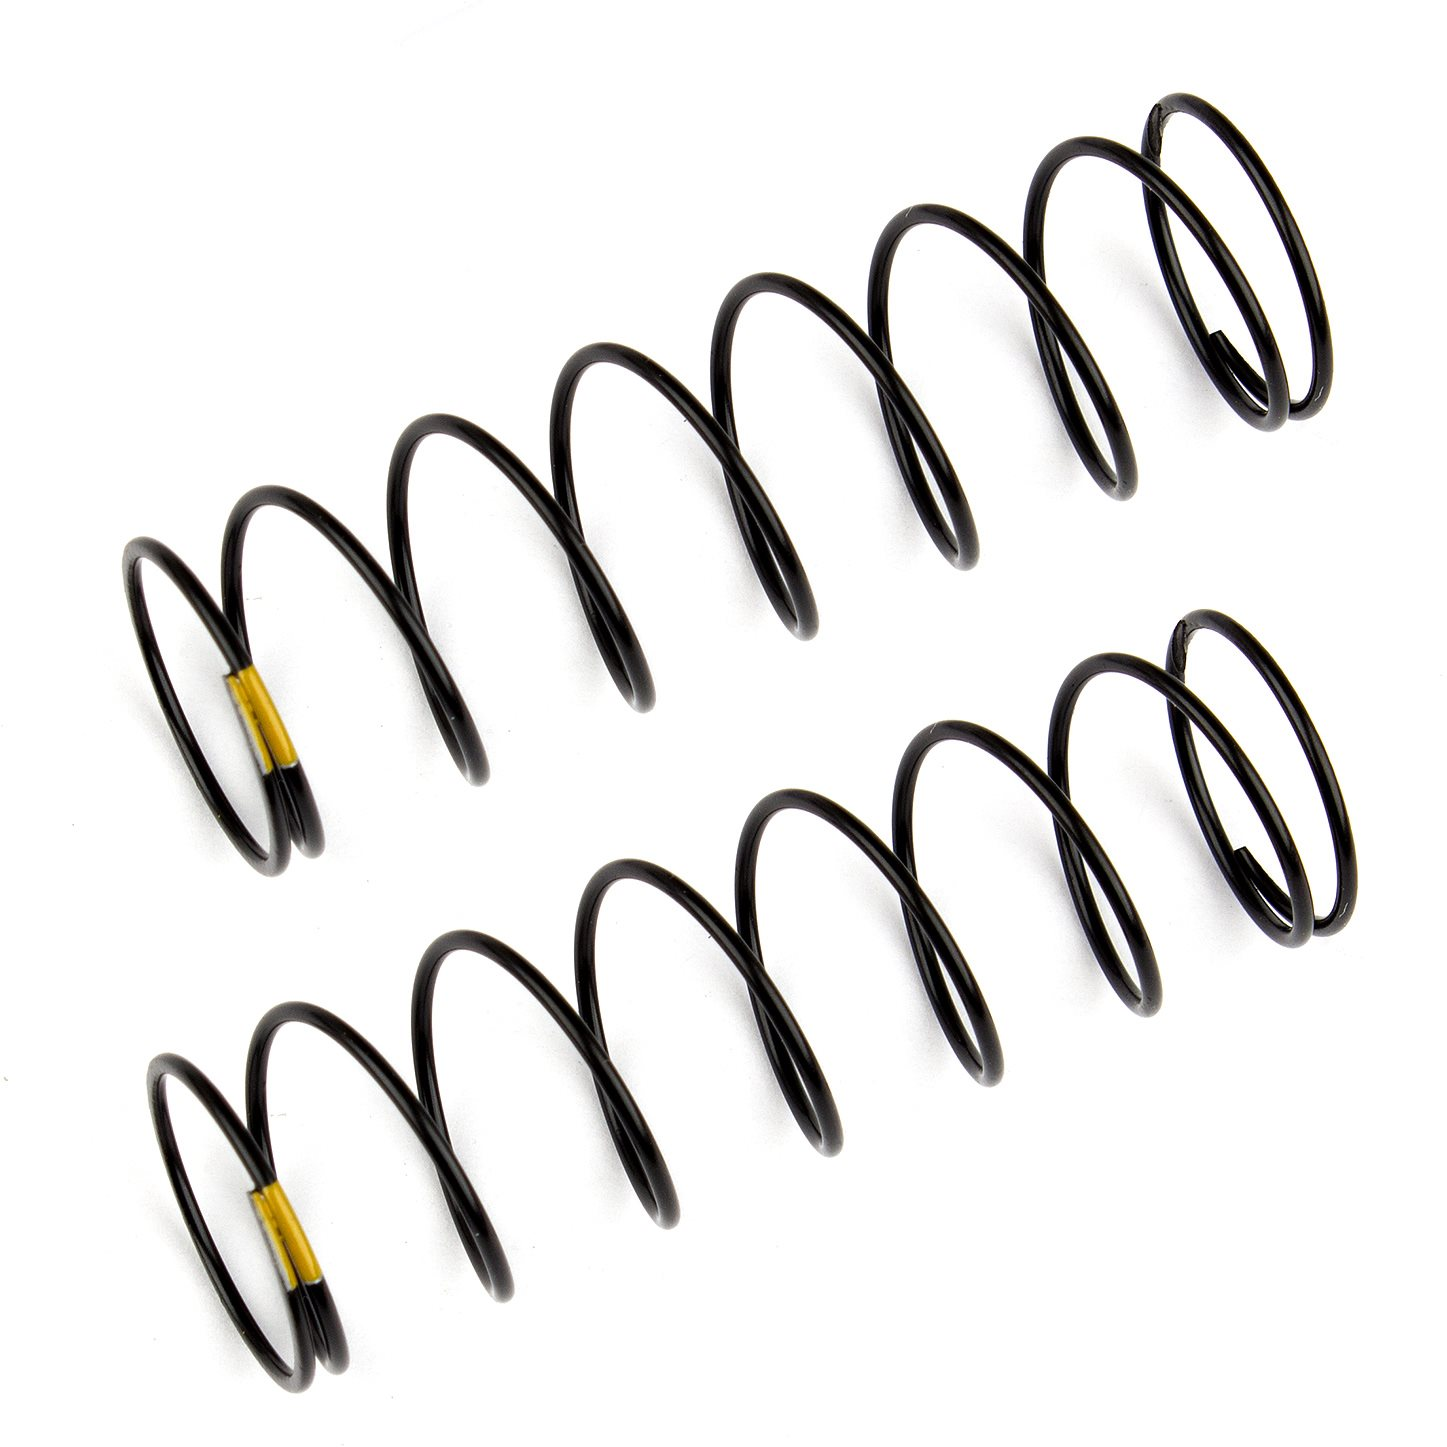 Associated Rear Shock Springs, Yellow, 2.30 Lb/In, For B6.1 (61Mm)